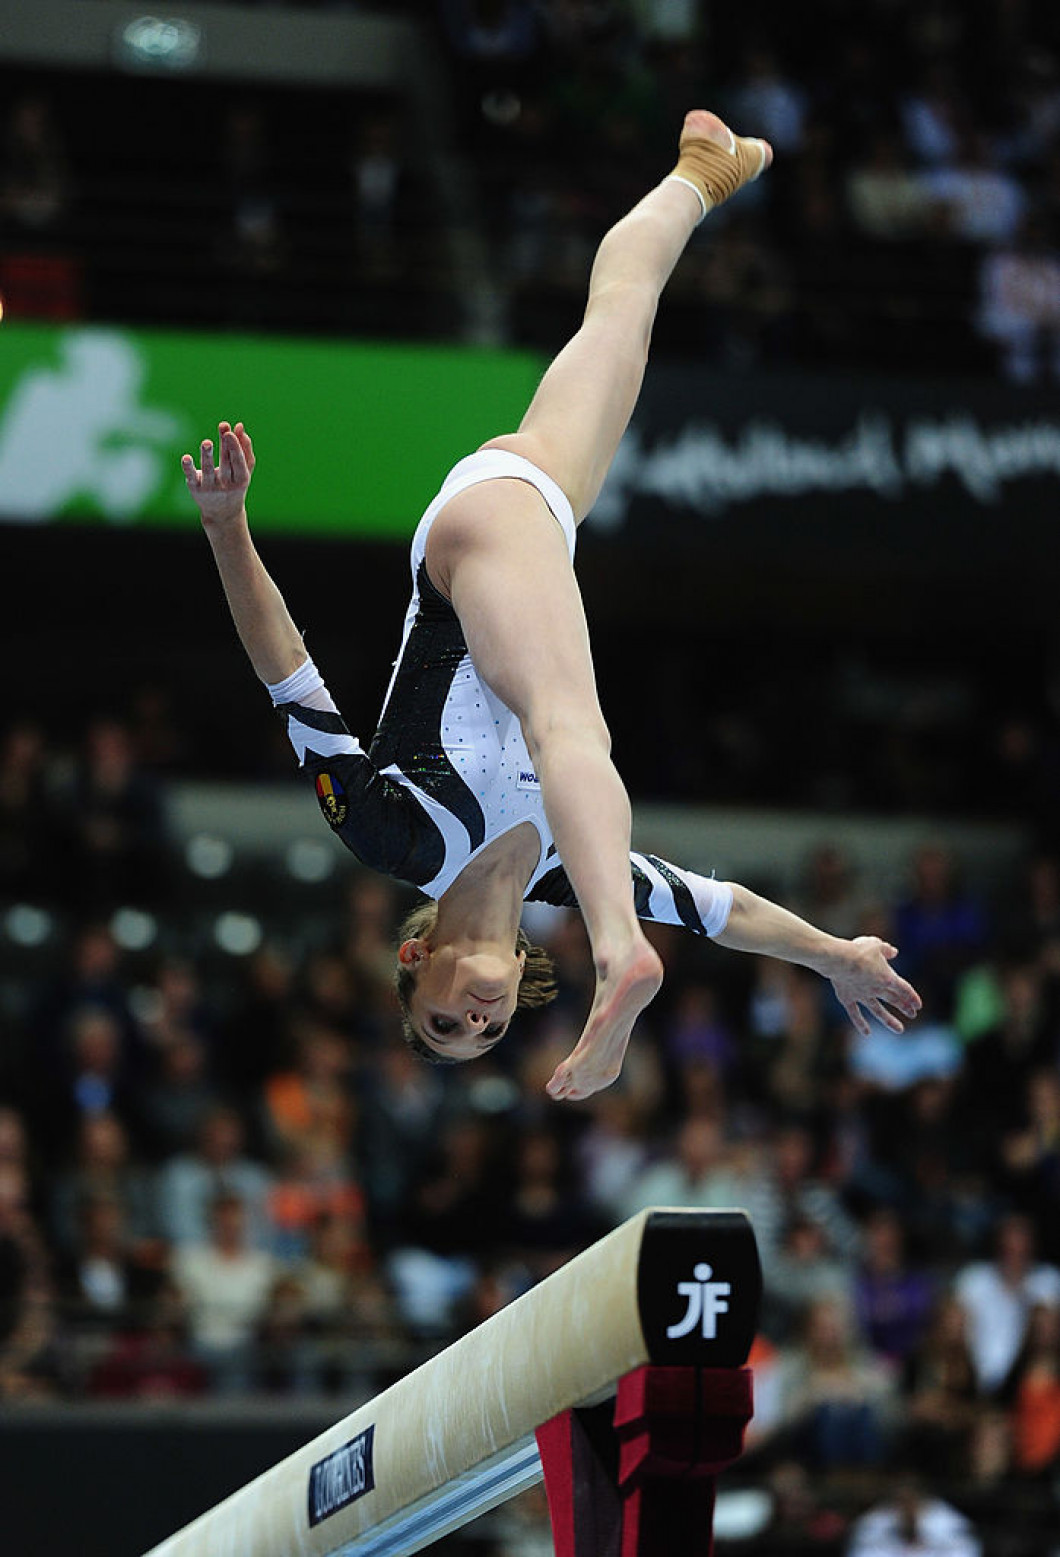 42nd Artistic Gymnastics World Championships